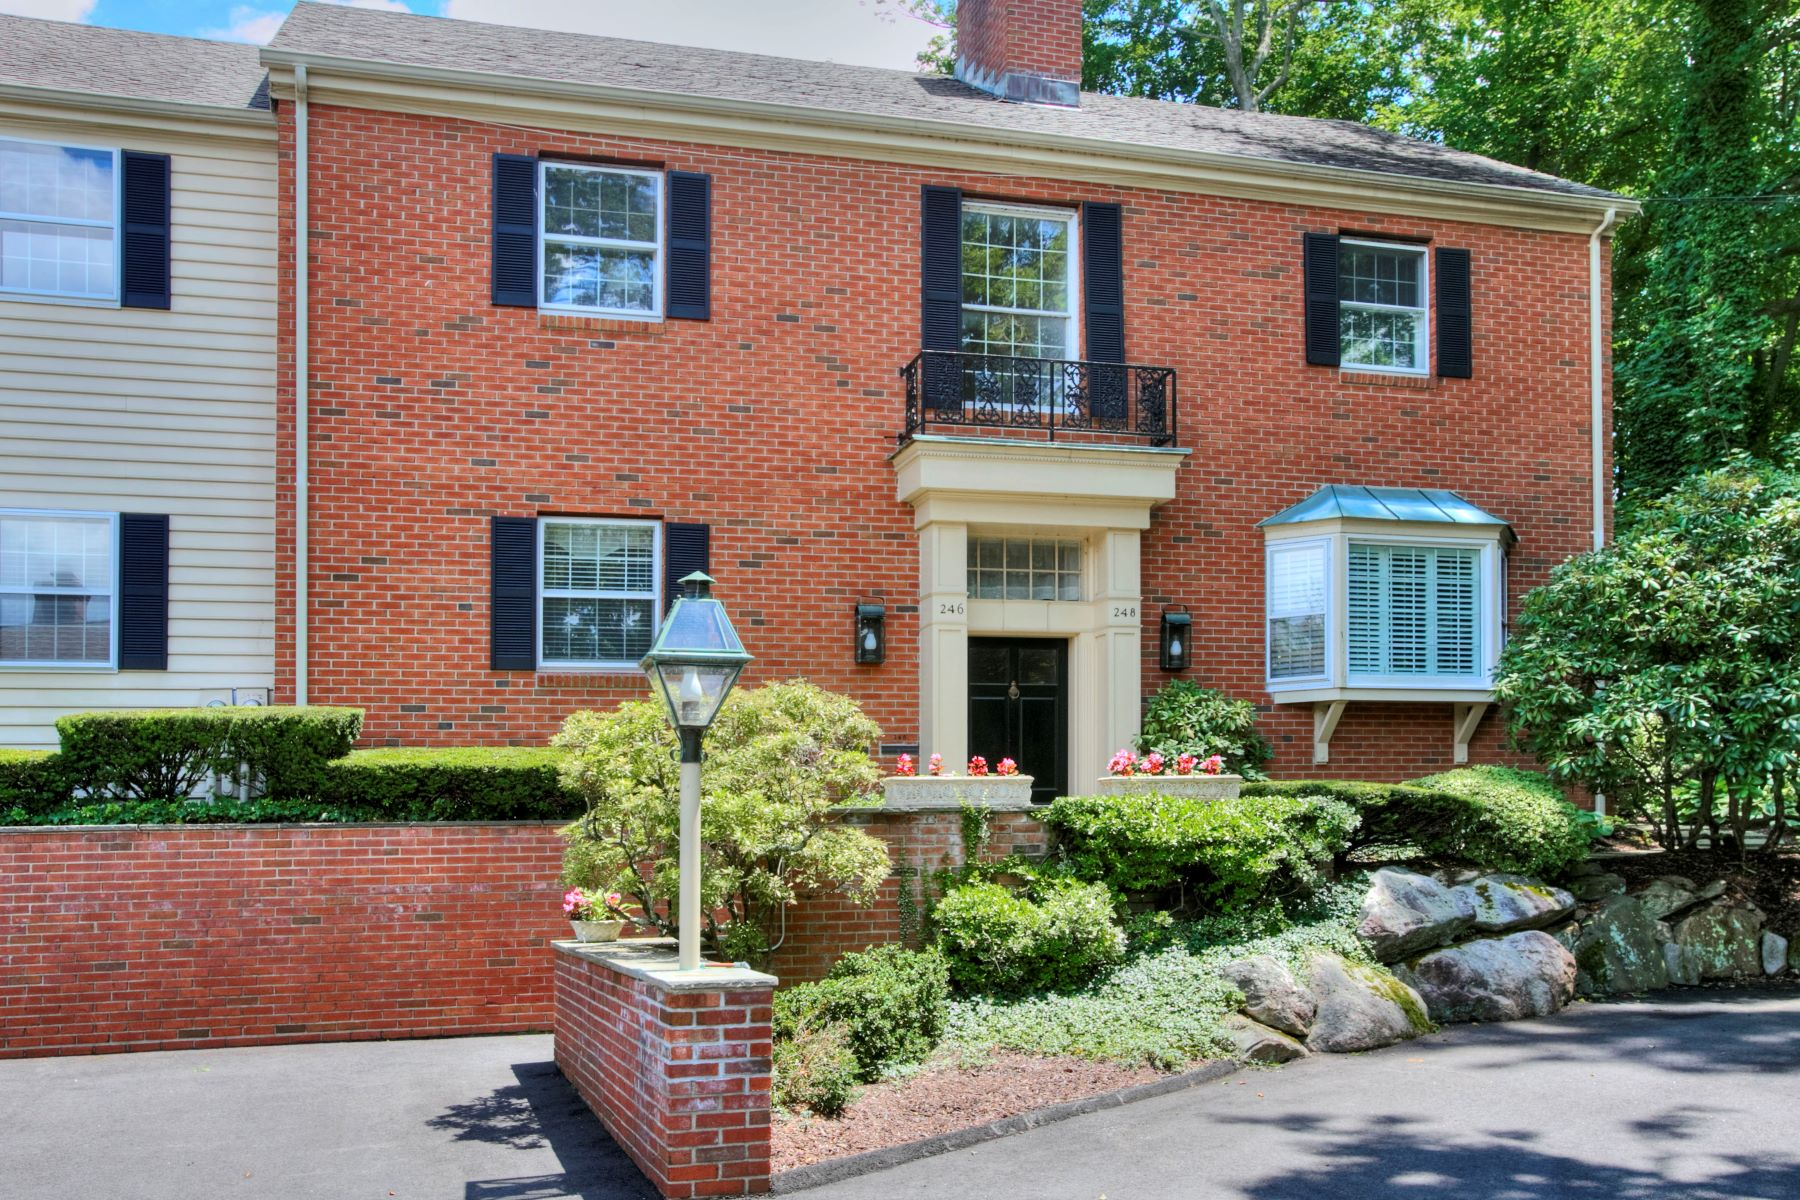 Condominium for Sale at 246 Park Street 246 Park Street 246 New Canaan, Connecticut 06840 United States